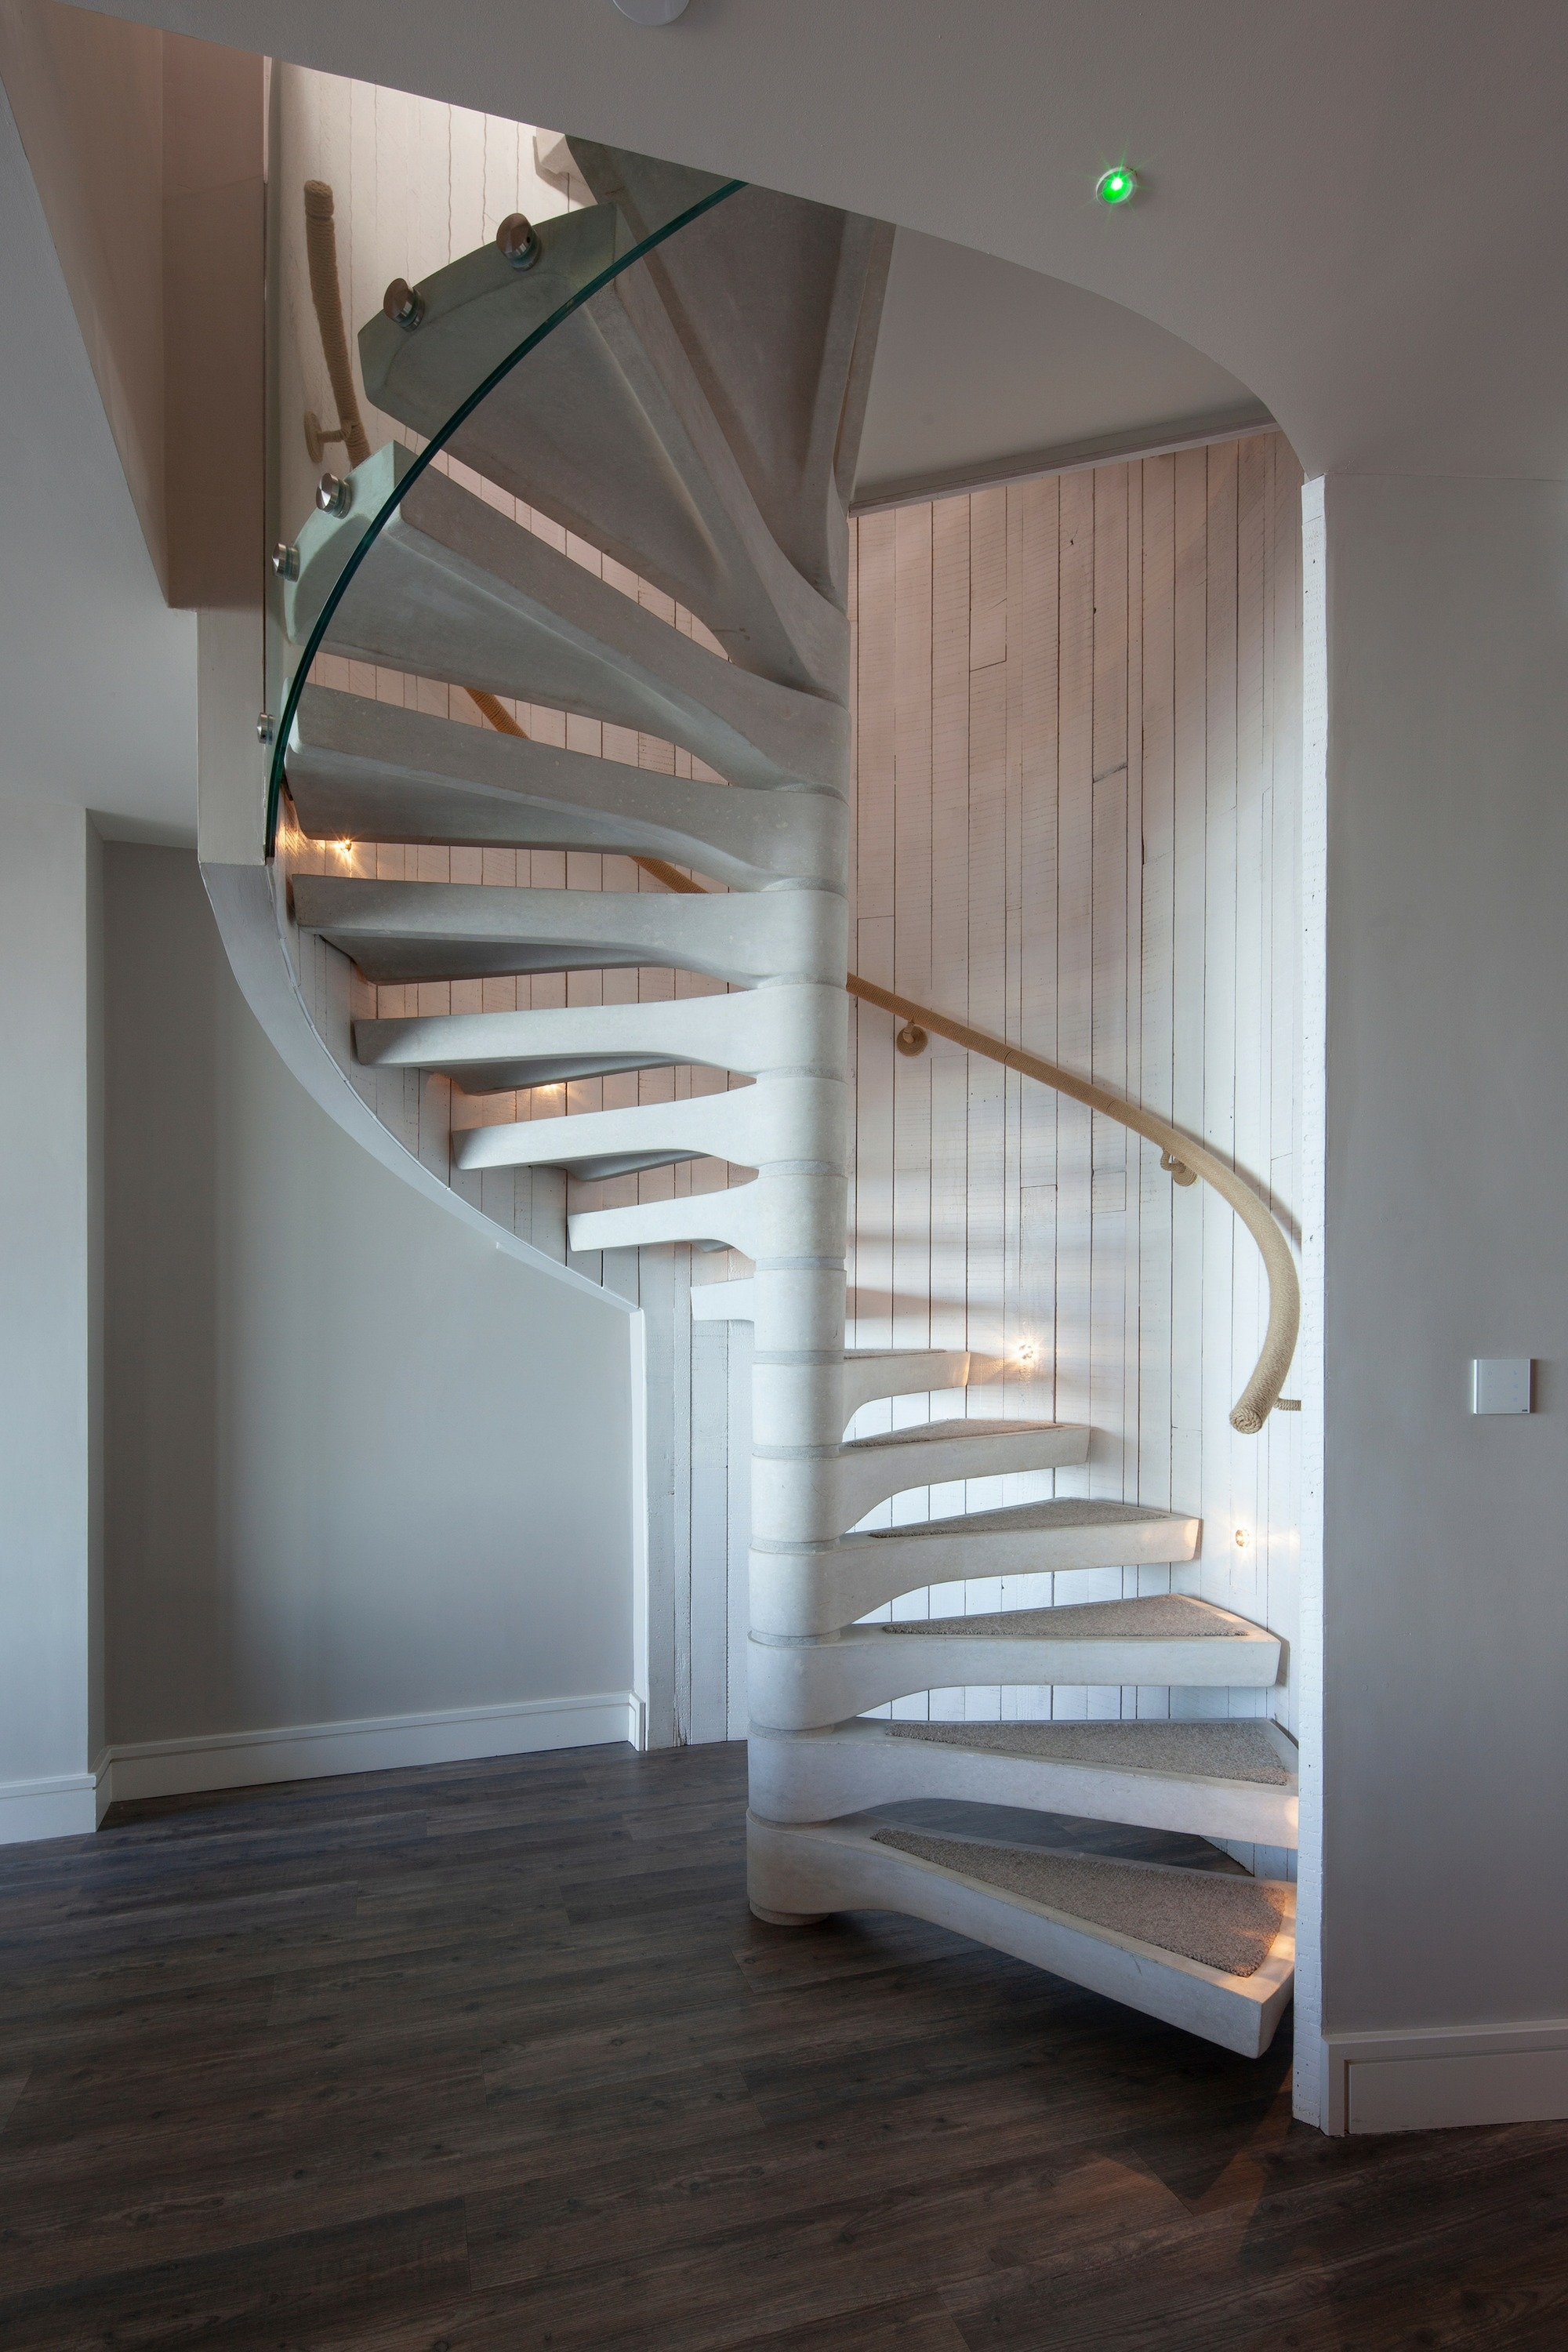 Spiral Staircase Manufacturers Bespoke Staircases   Minimum Space For Spiral Staircase   Stair Treads   Building Regulations   Design   Space Saving   Tread Depth